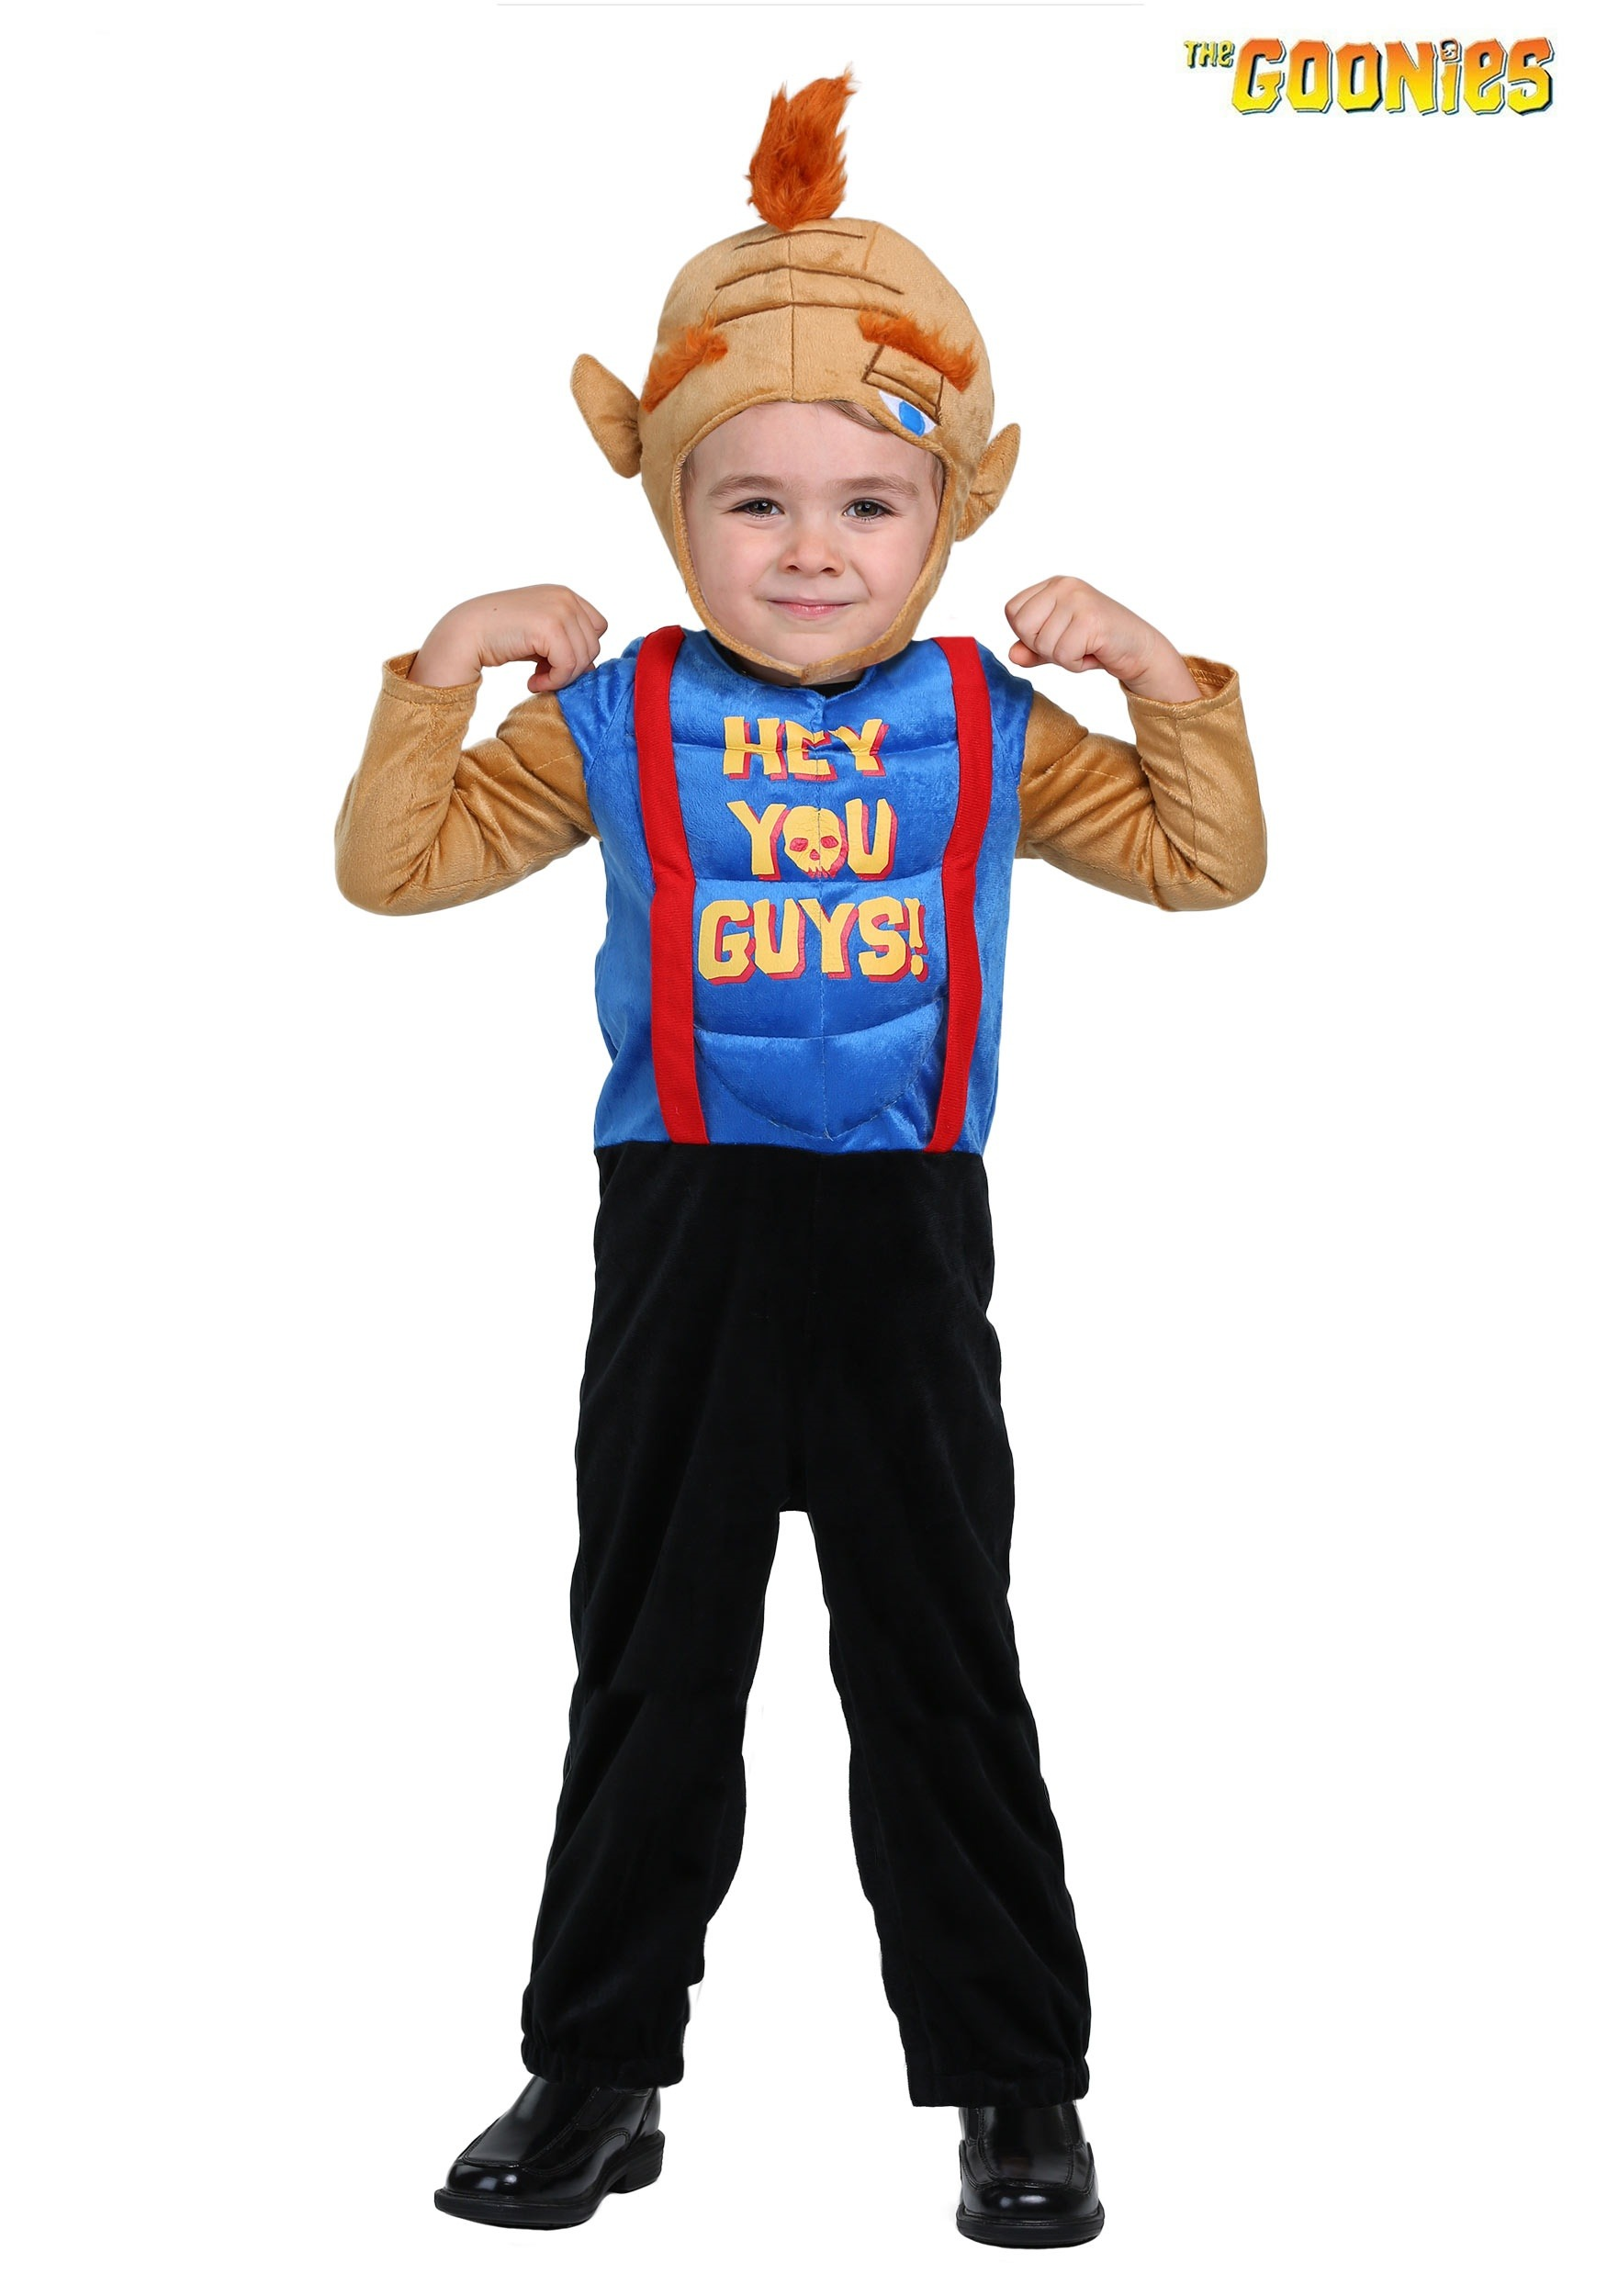 e1b14c5e19e81 The Goonies Sloth Costume for Toddlers